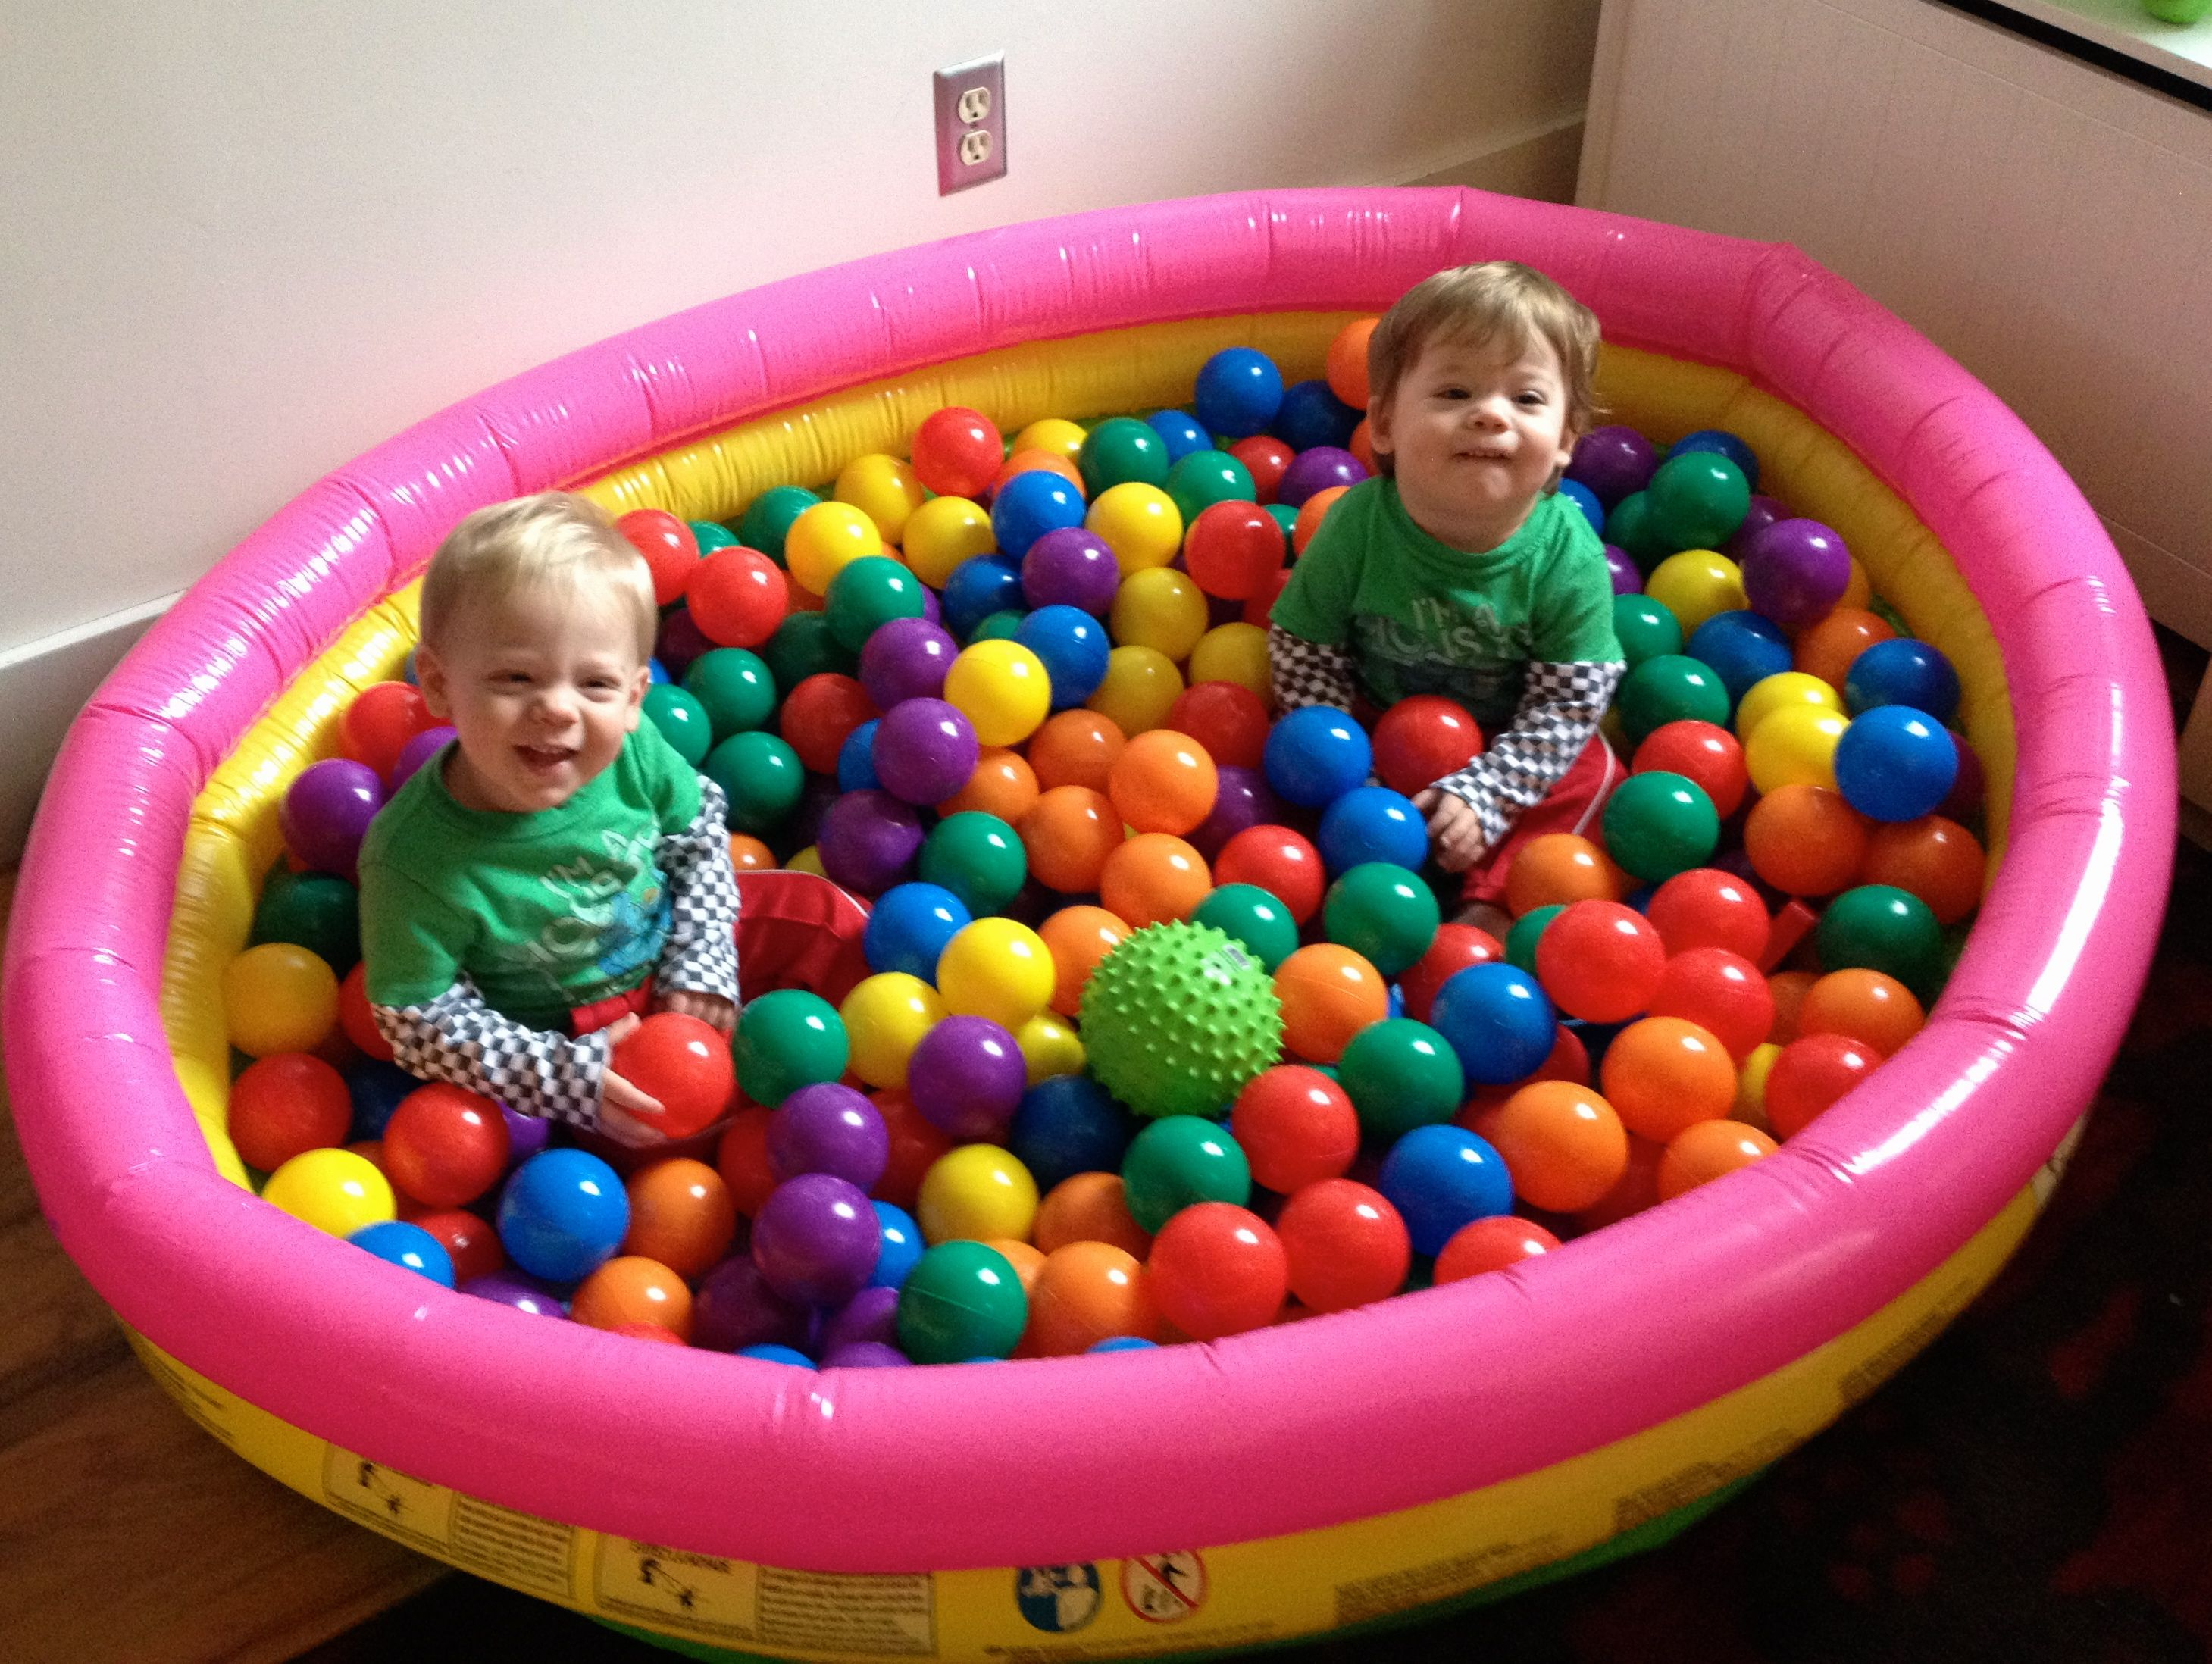 Cheap and Simple Daycare Ideas Pinterest